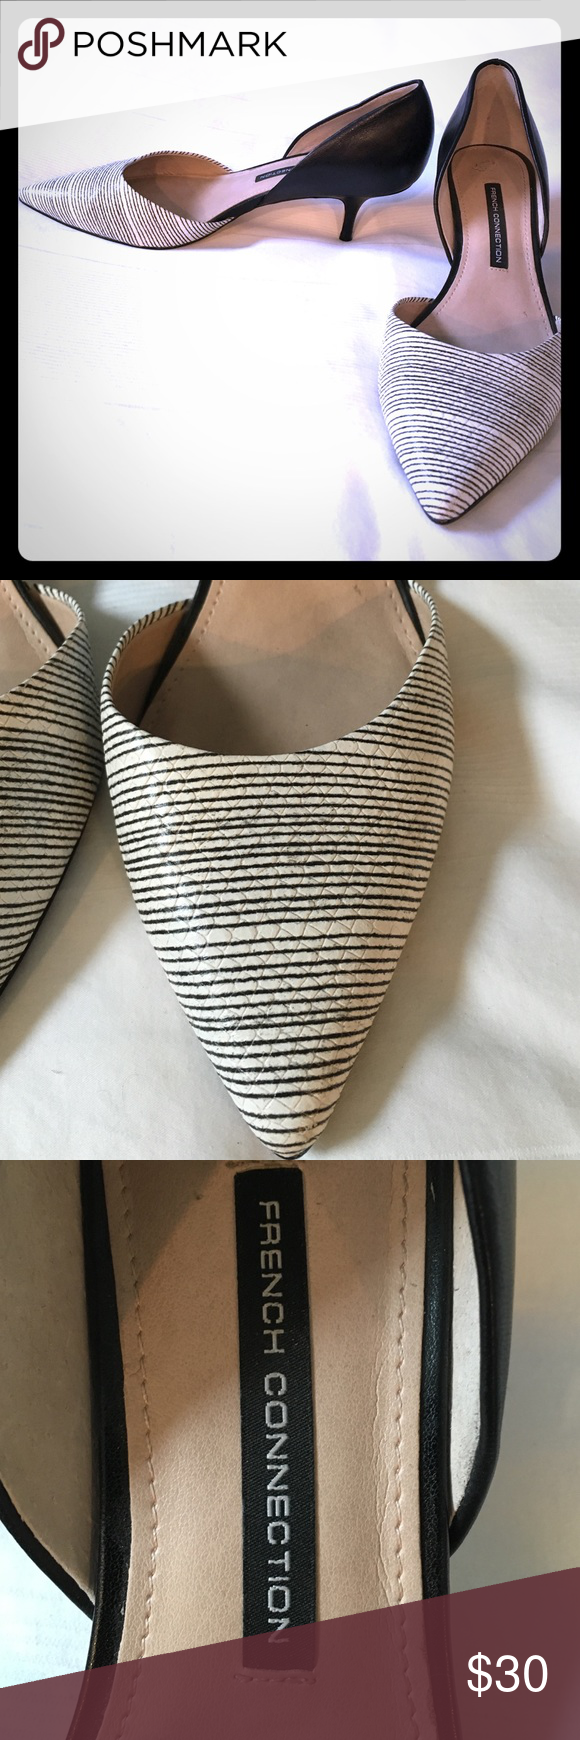 French Connection kitten heels French Connection kitten heel D'Orsay style pump. Black and white striped tie area and solid black back. Size 9 M US but this says 40 EU (normally a 9 is a 39). Fits like a 9. French Connection Shoes Heels